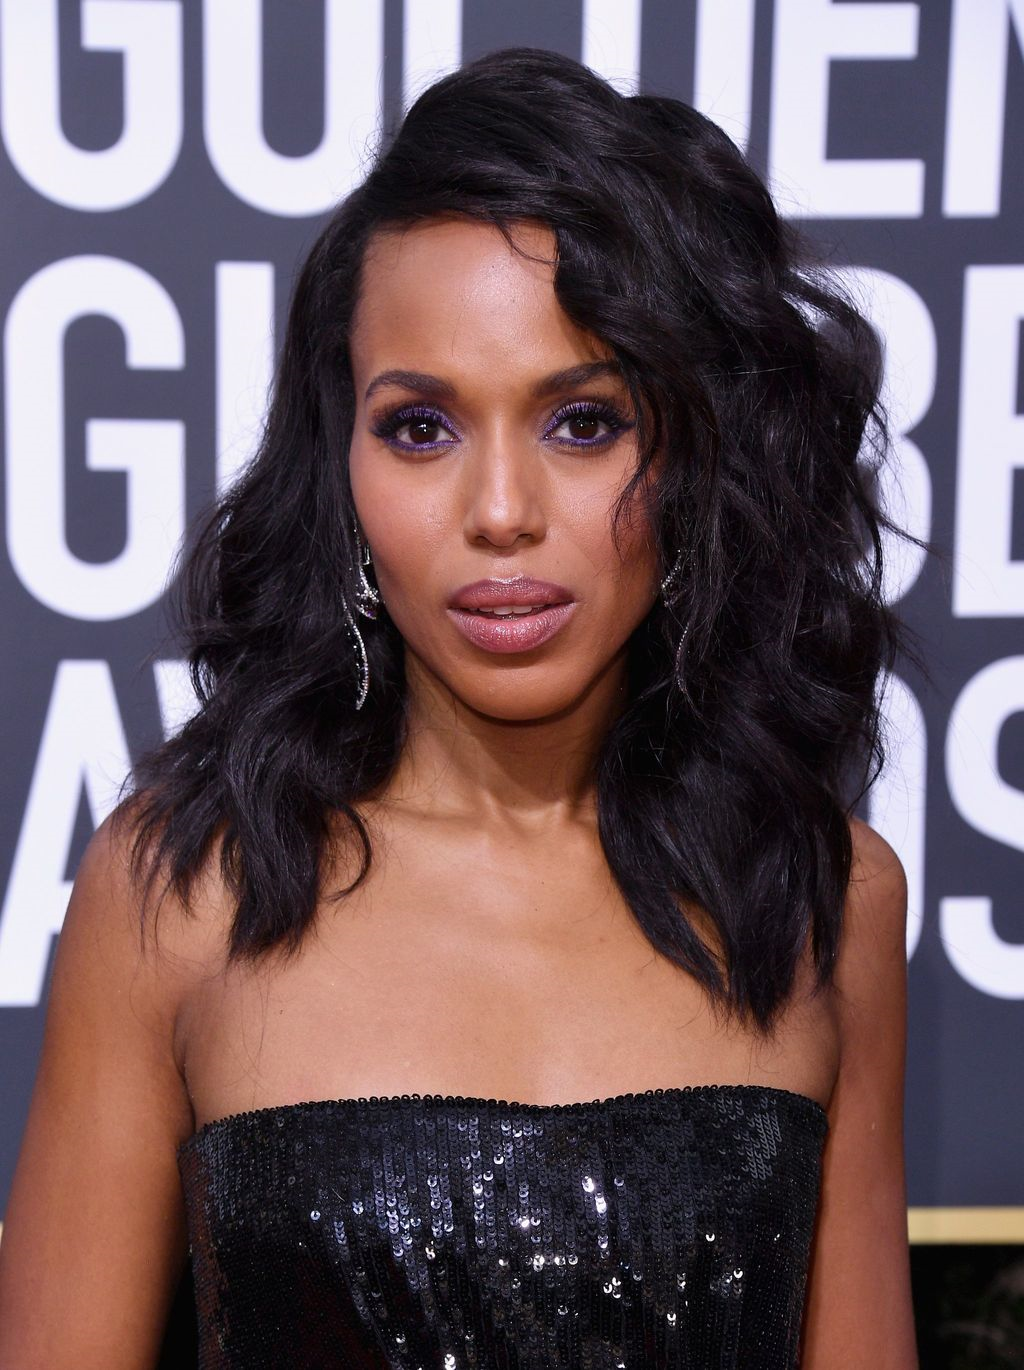 Pictures Kerry Washington nudes (17 foto and video), Topless, Hot, Boobs, underwear 2018